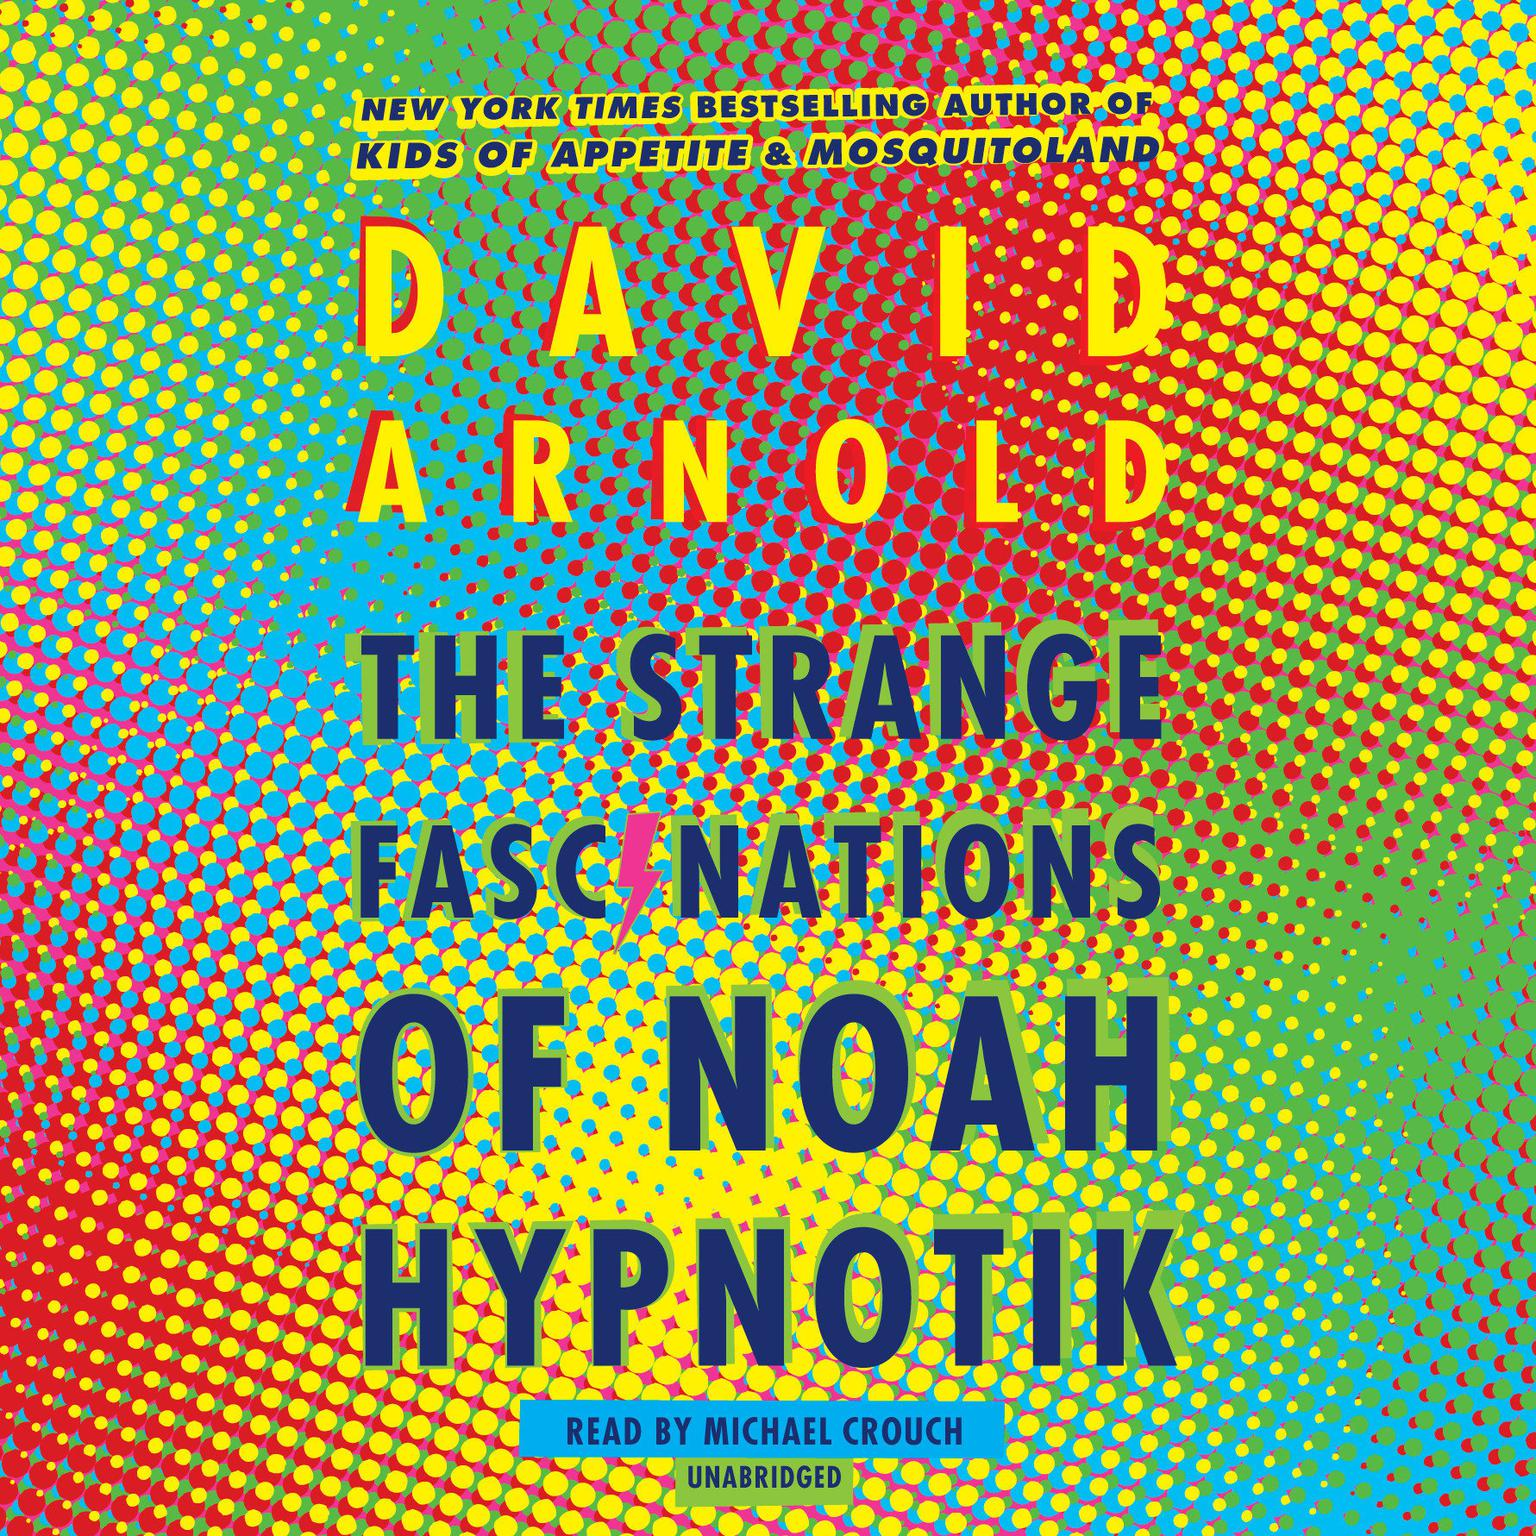 Printable The Strange Fascinations of Noah Hypnotik Audiobook Cover Art